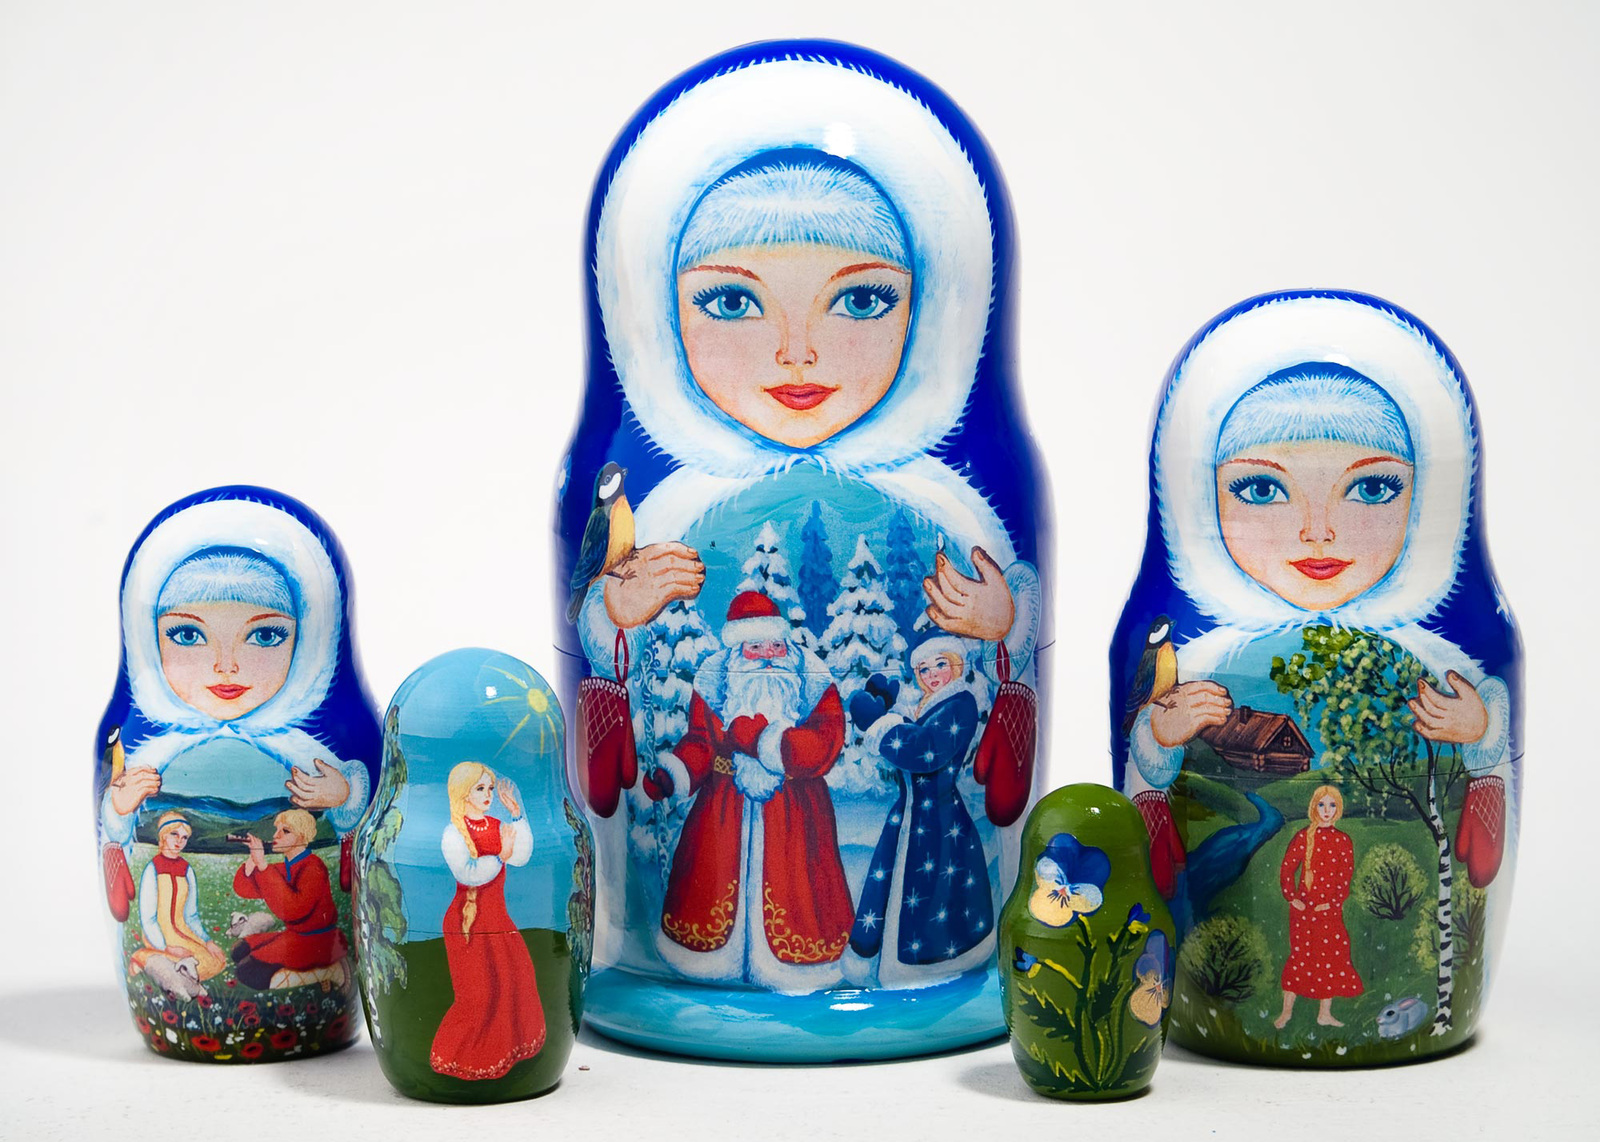 "Snow Maiden Fairy Tale Nesting Doll - 6"" w/ 5 Piece"